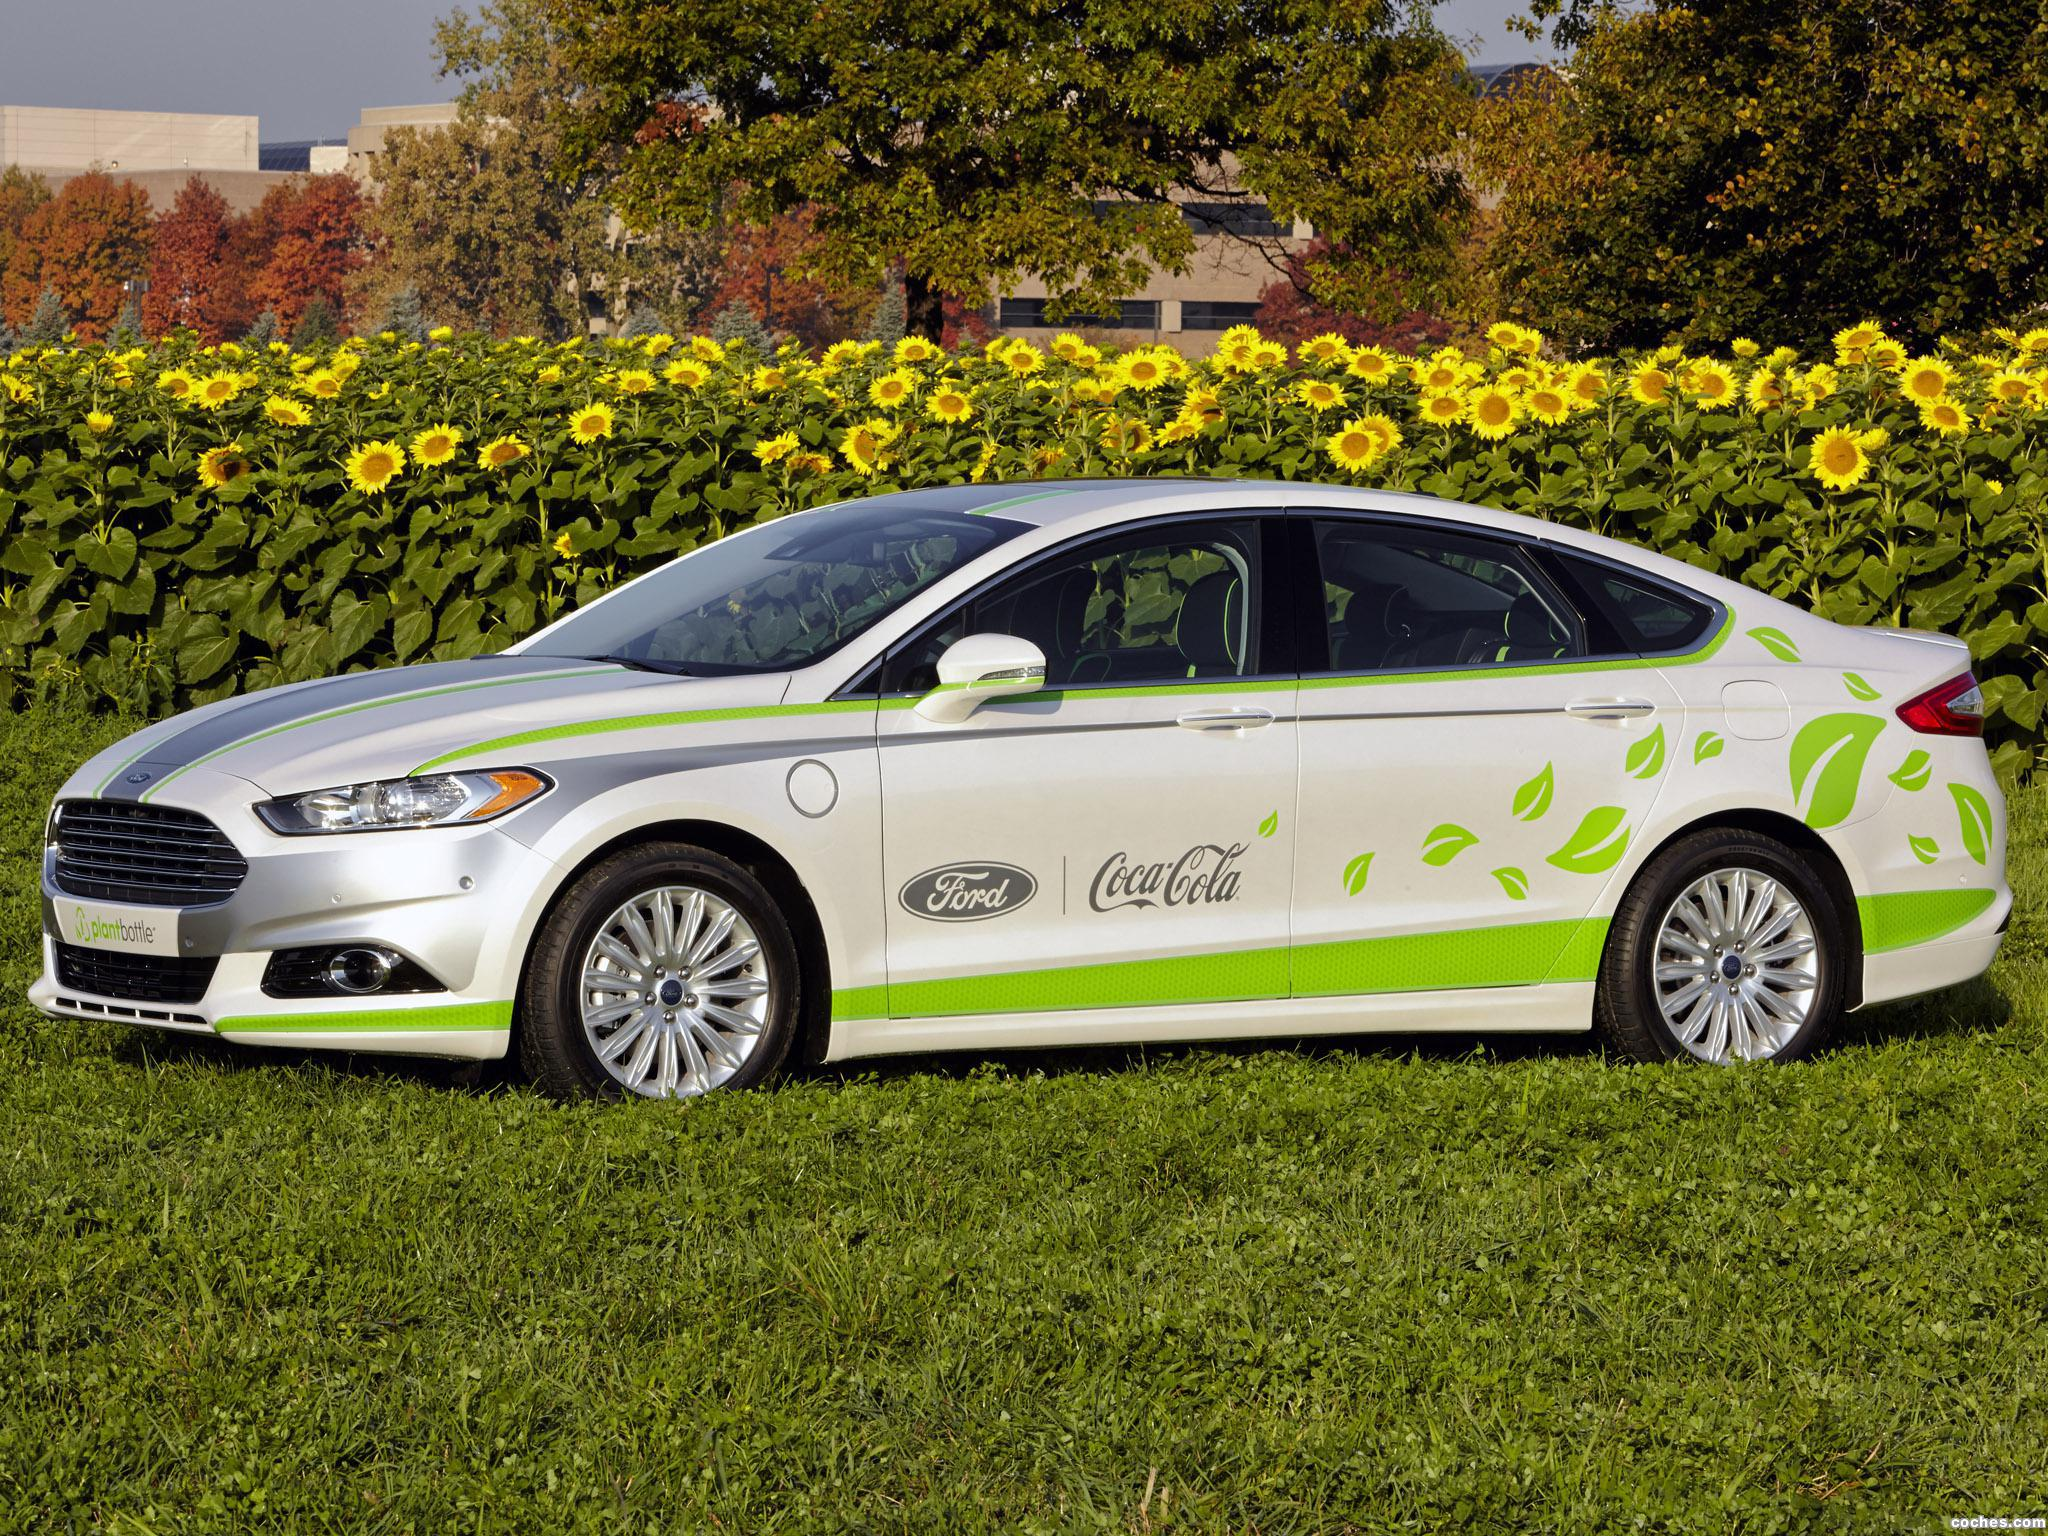 ford_fusion-energi-coca-cola-plantbottle-research-vehicle-2013_r10